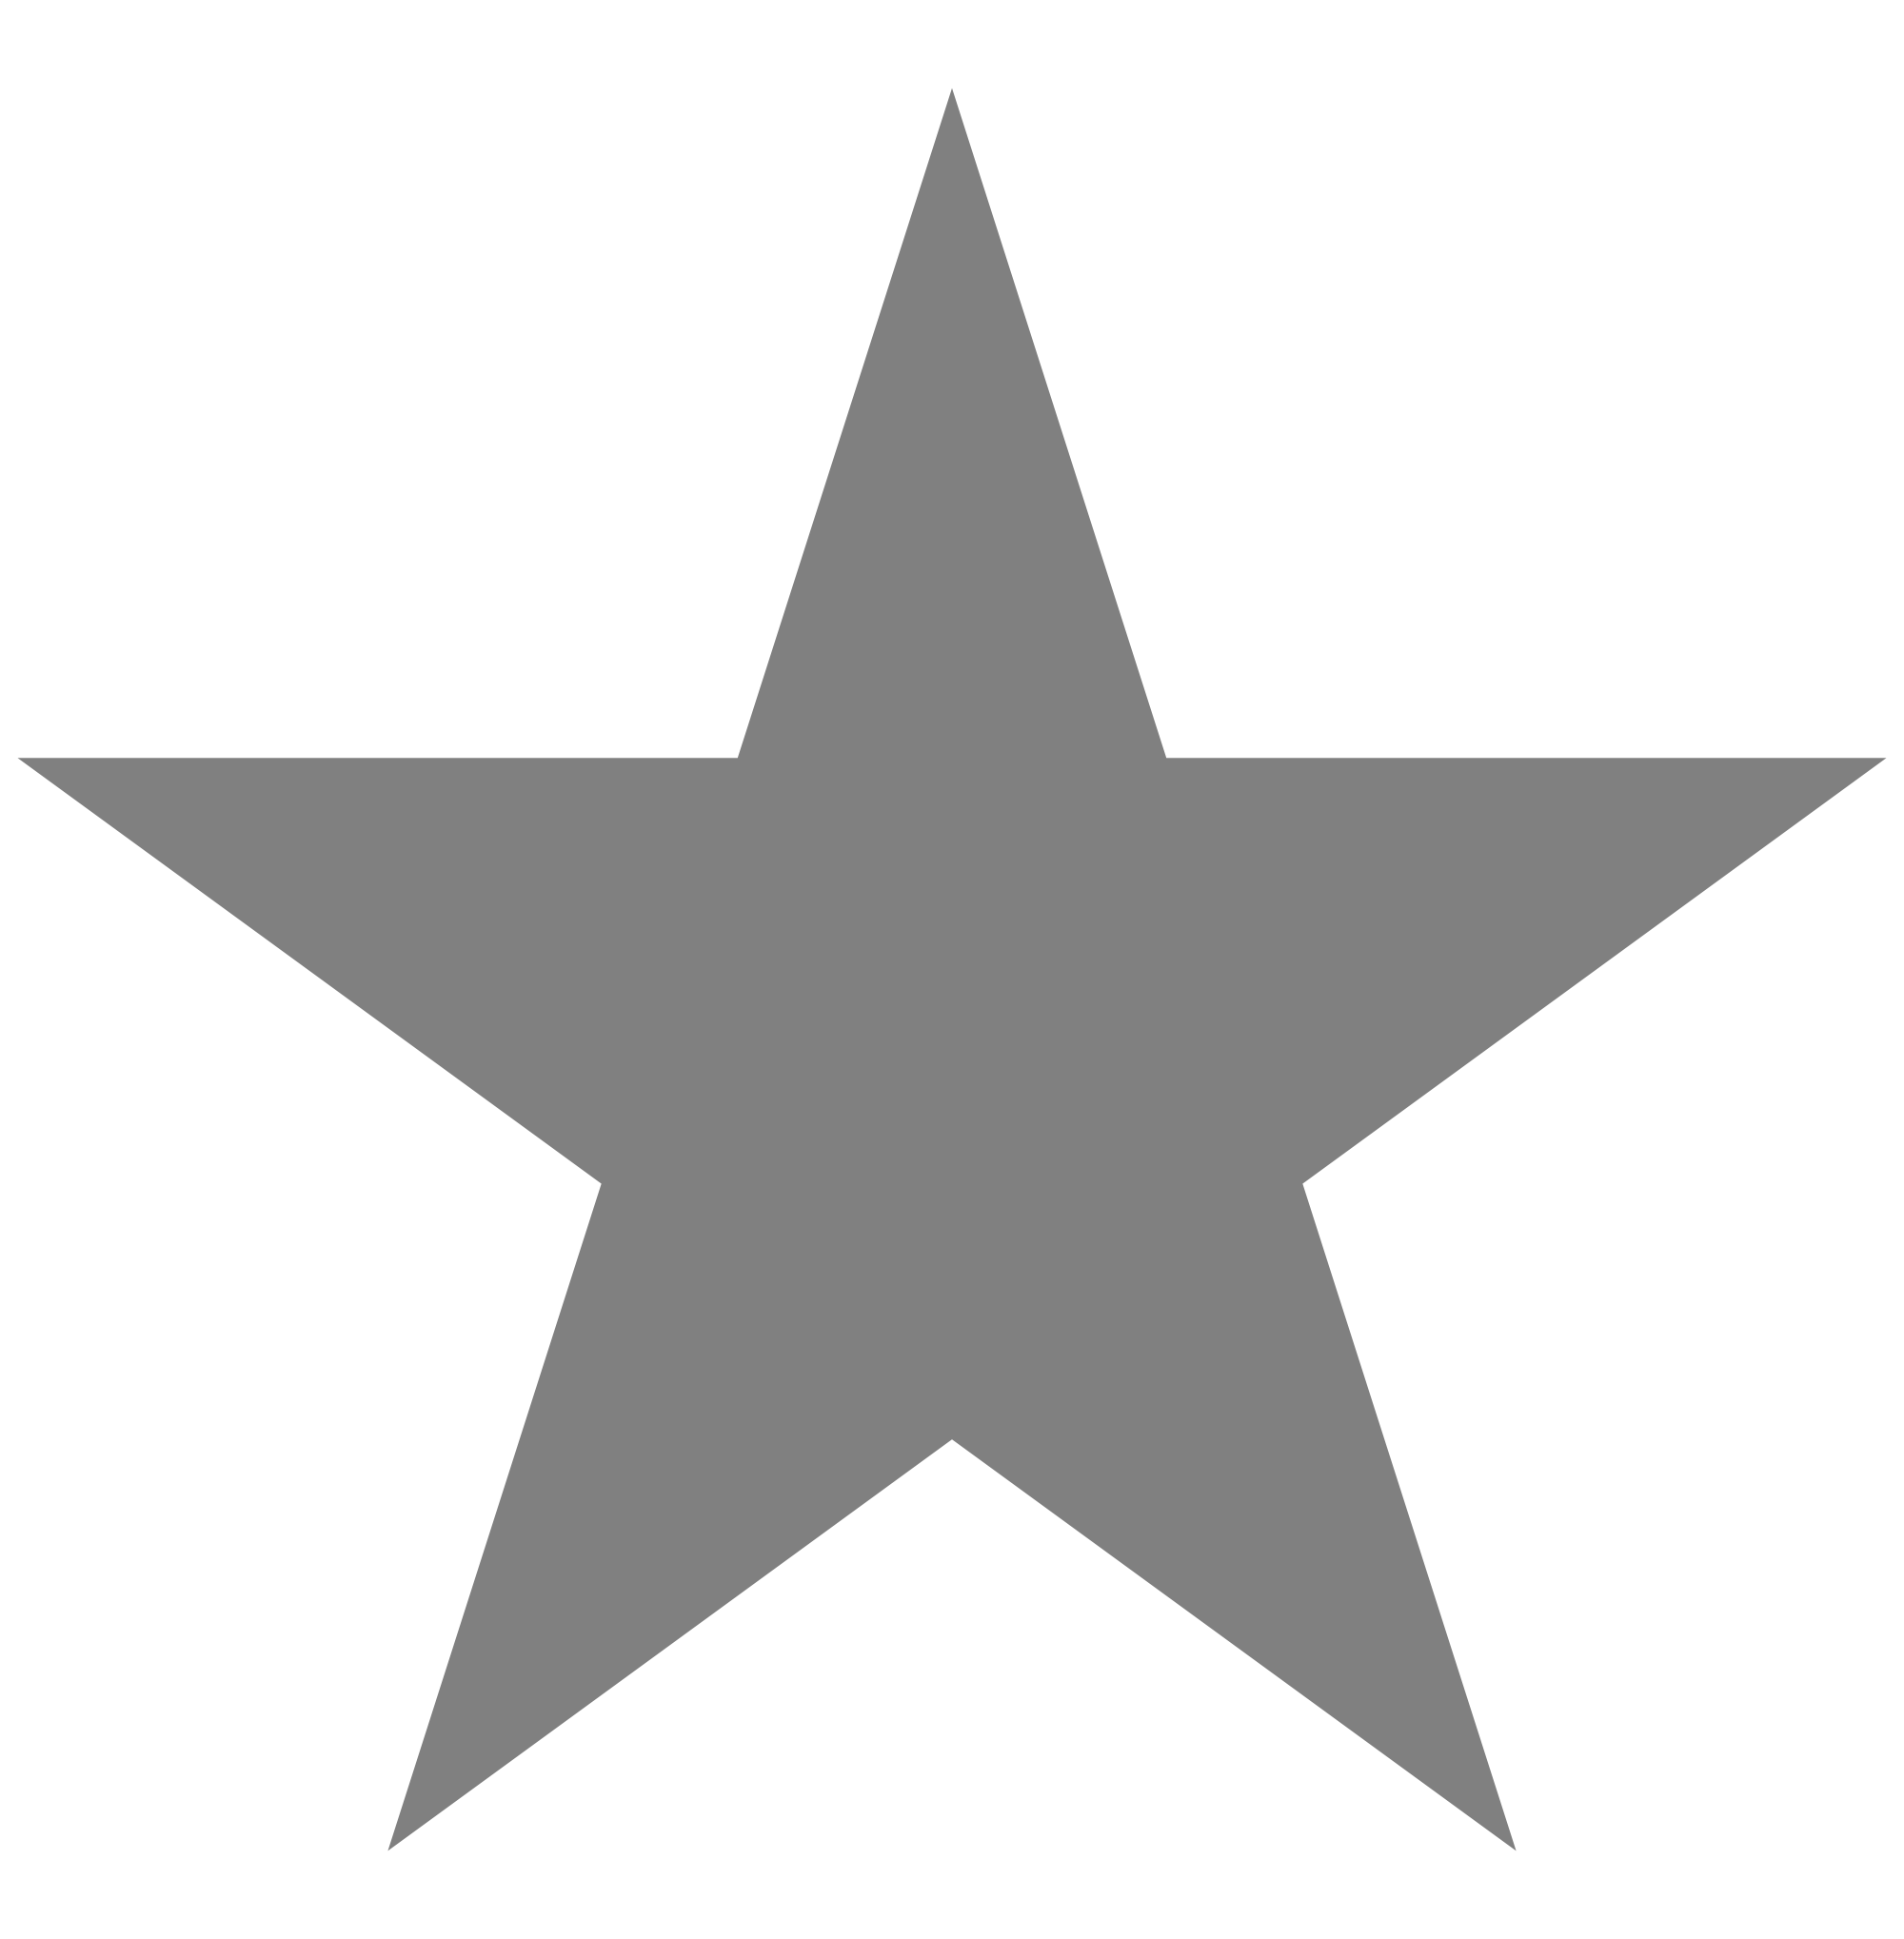 Png star. Image free picture download